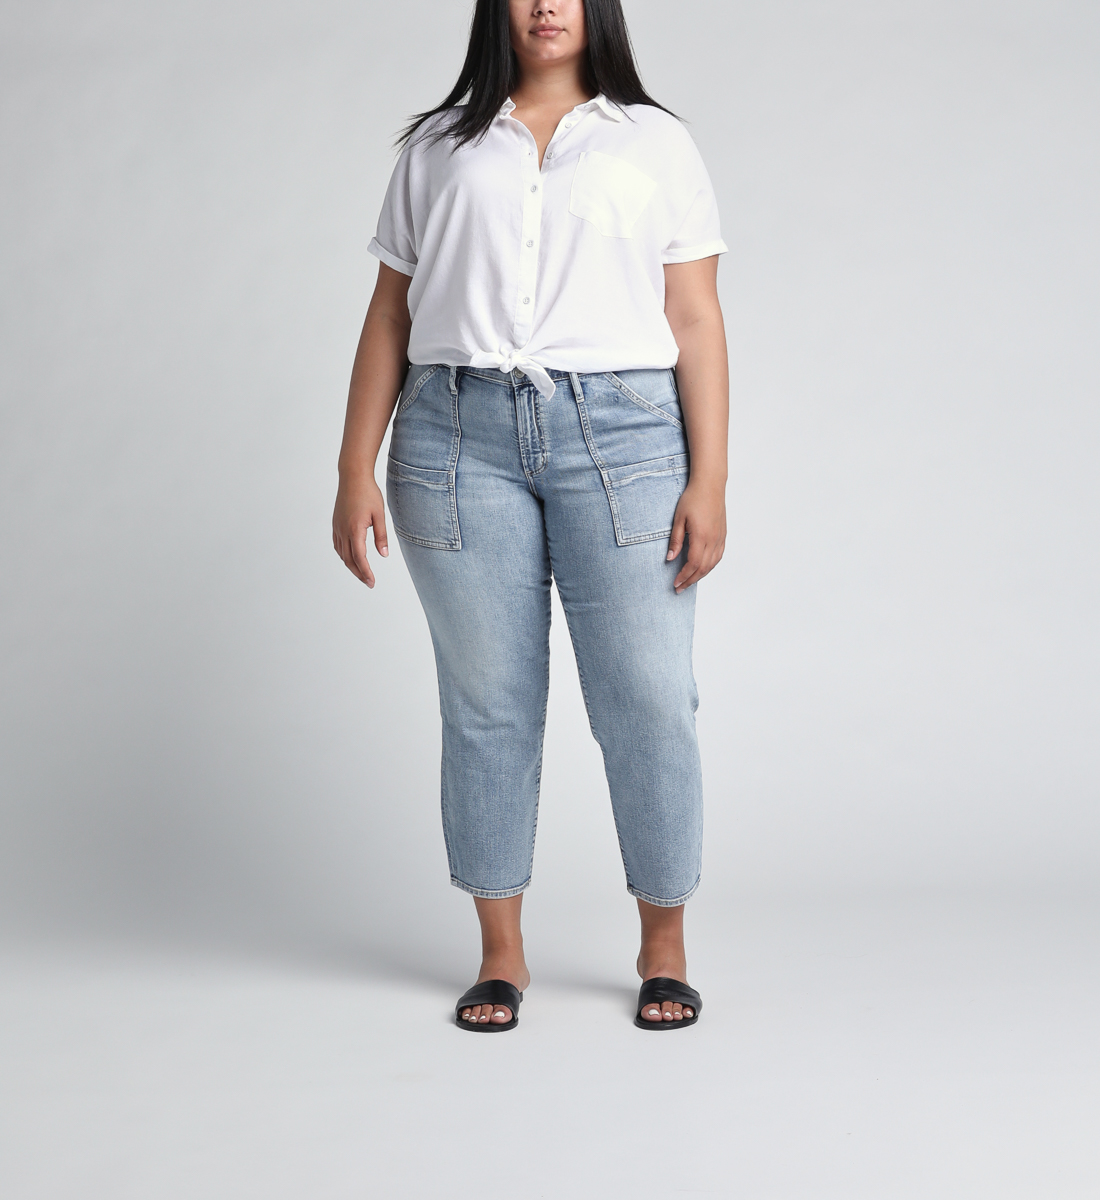 In The Loop Mid Rise Ankle Slim Leg Jeans Plus Size Alt Image 1